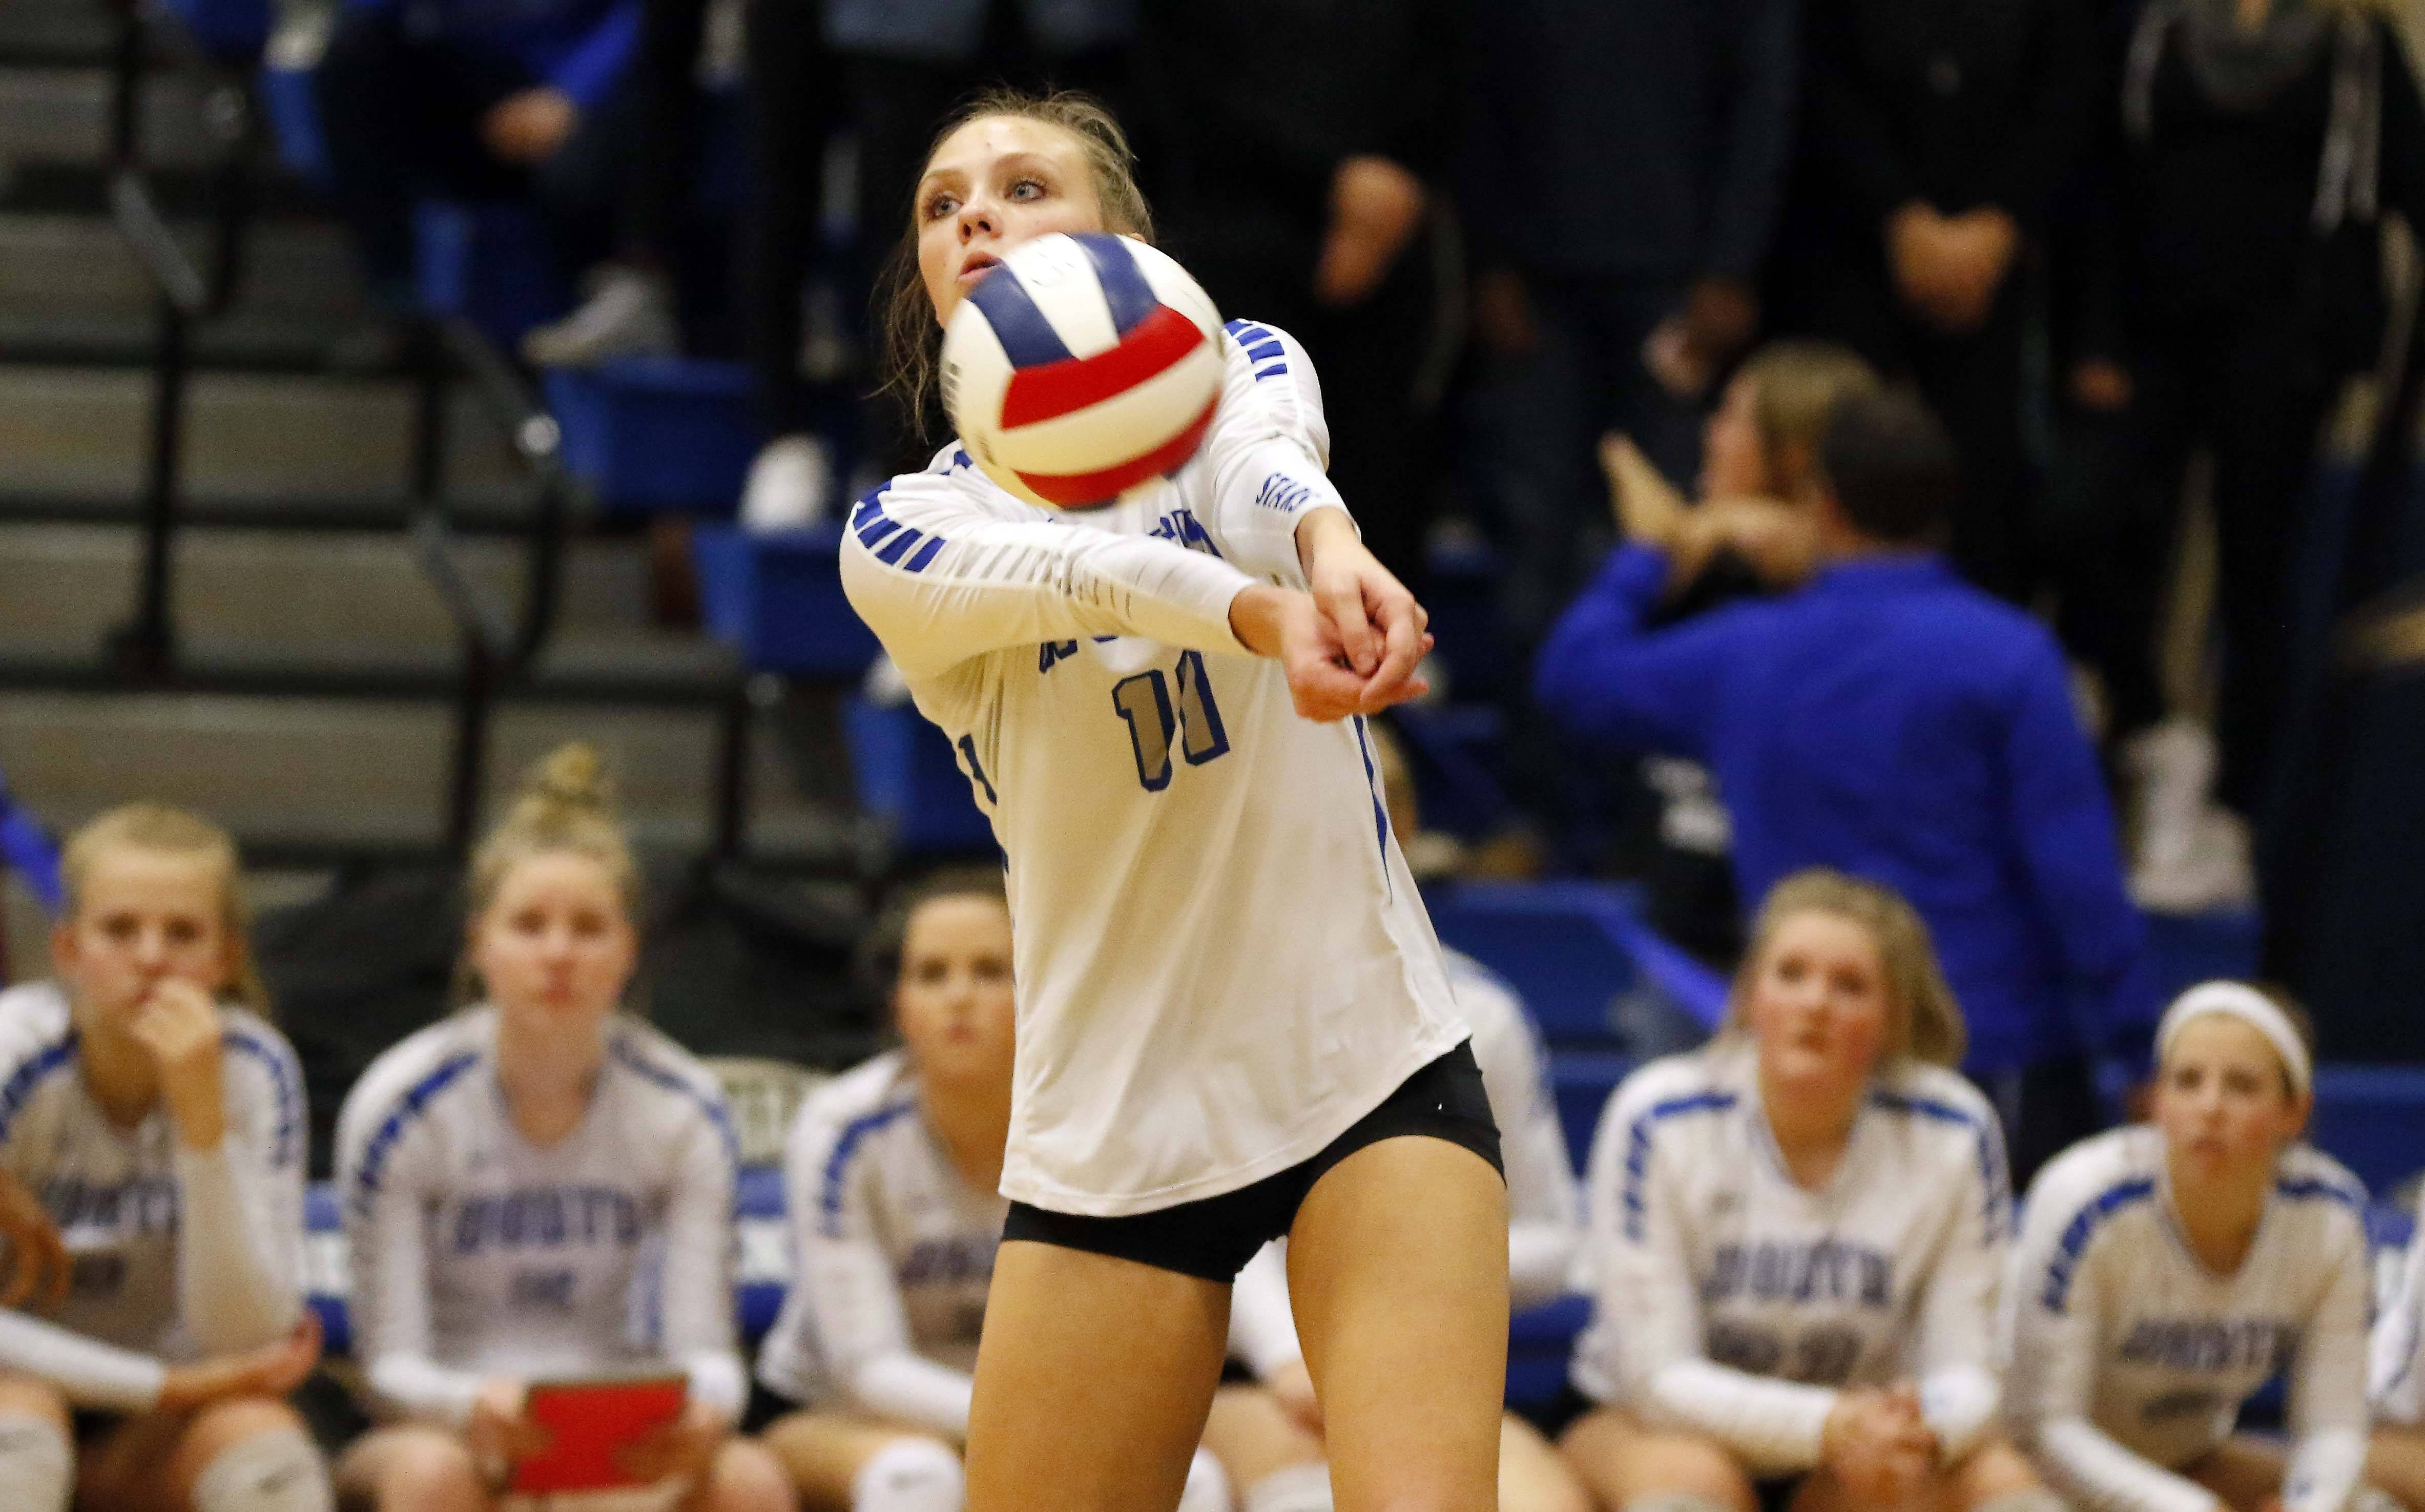 St. Charles North's Katherine Lanz (11) Friday in the Geneva volleyball supersectional.